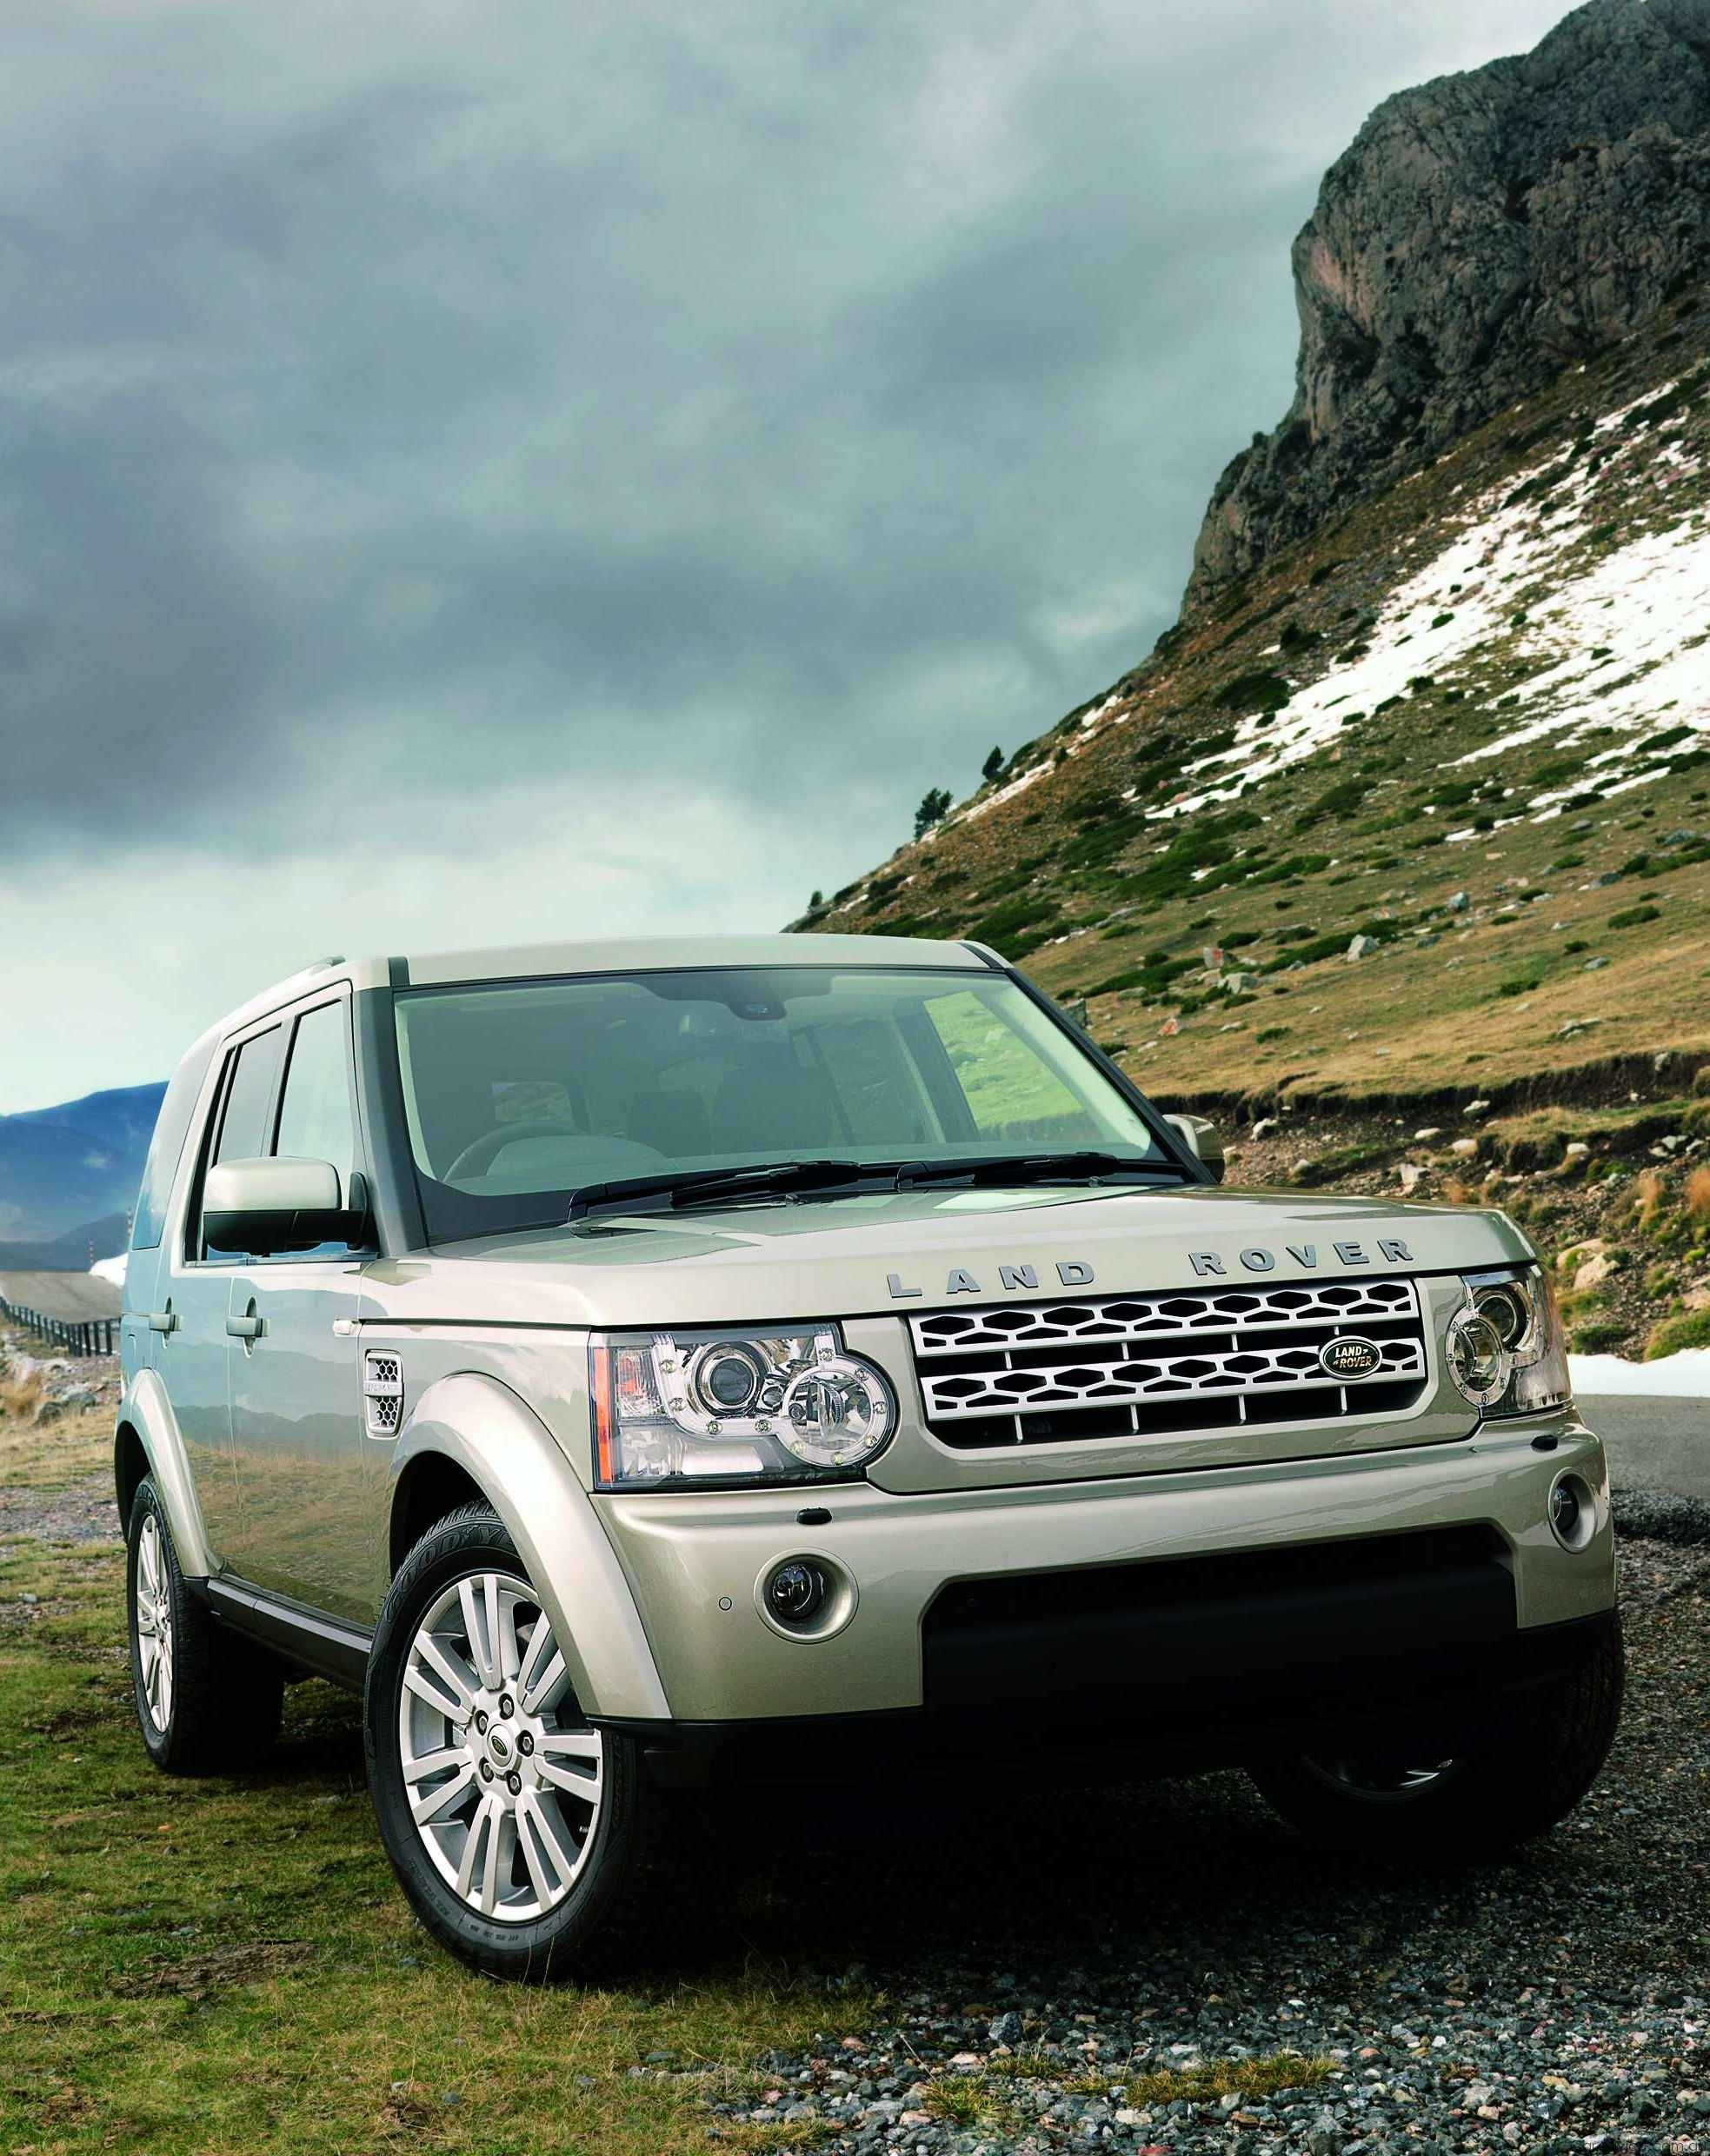 2009 Land Rover Discovery 4 revealed - photos | CarAdvice